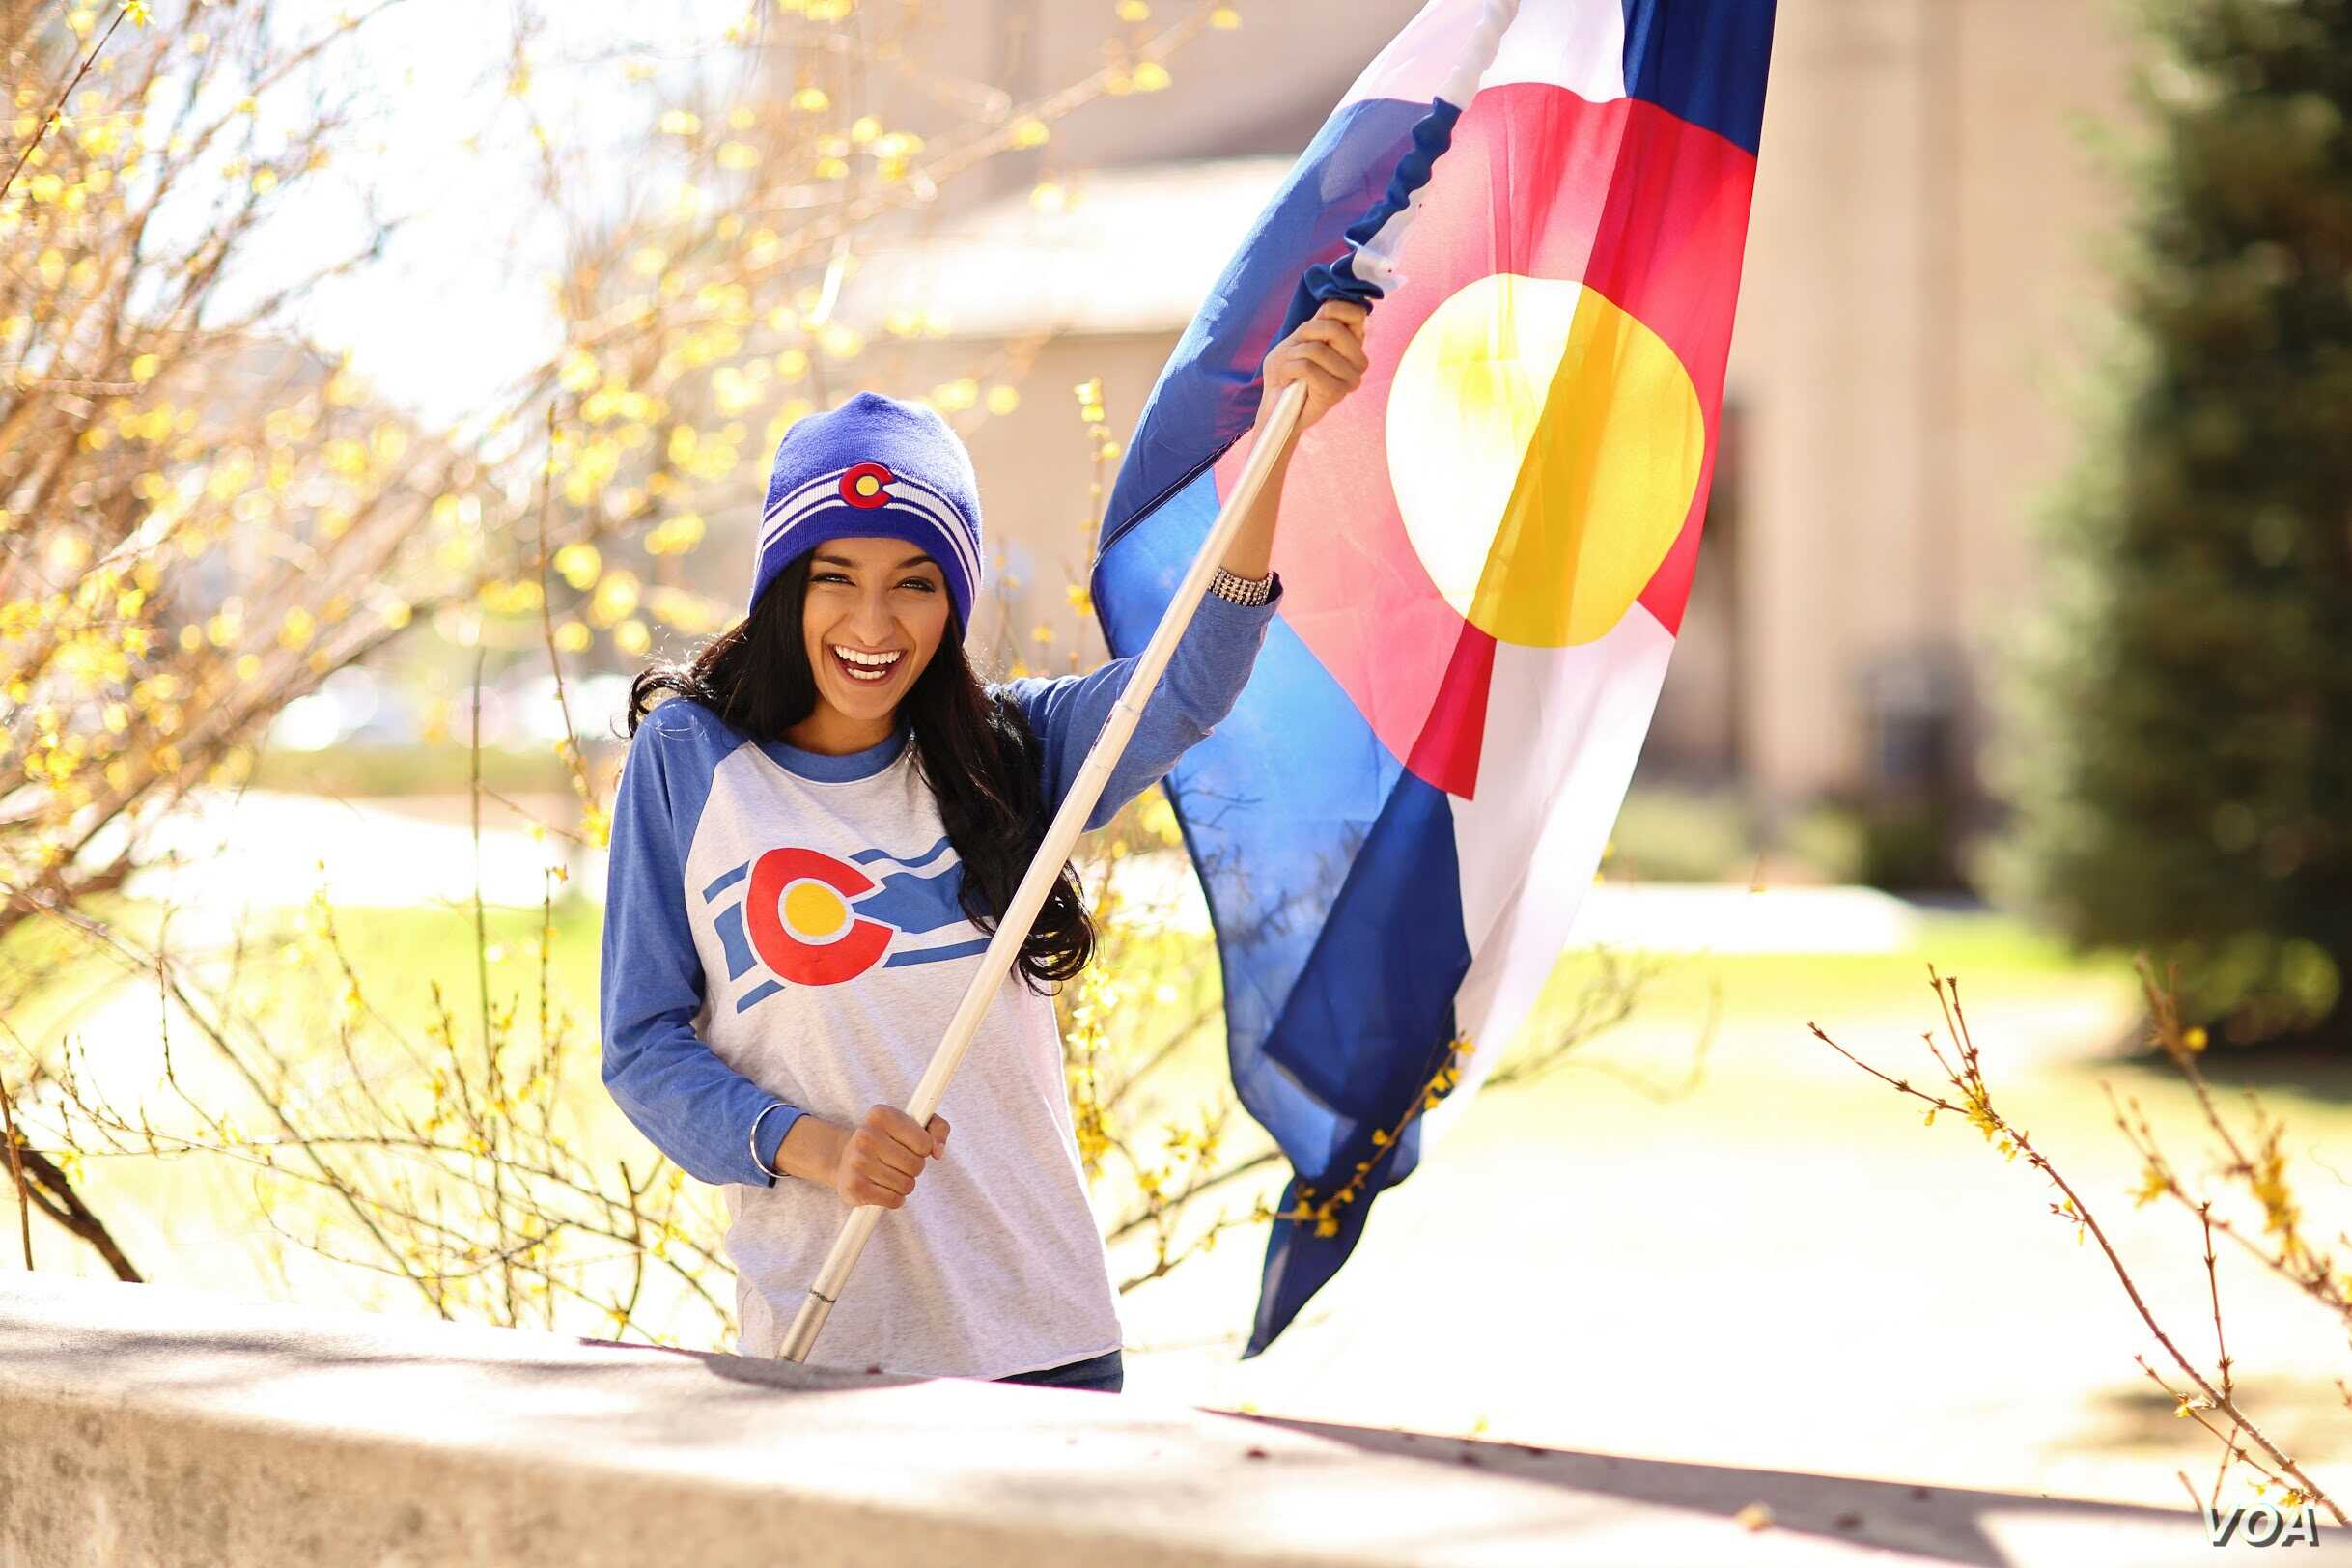 Dalai Lama Scholar is one of many honors Singh lists on her resume (Photo - Courtesy Amy K Photography)